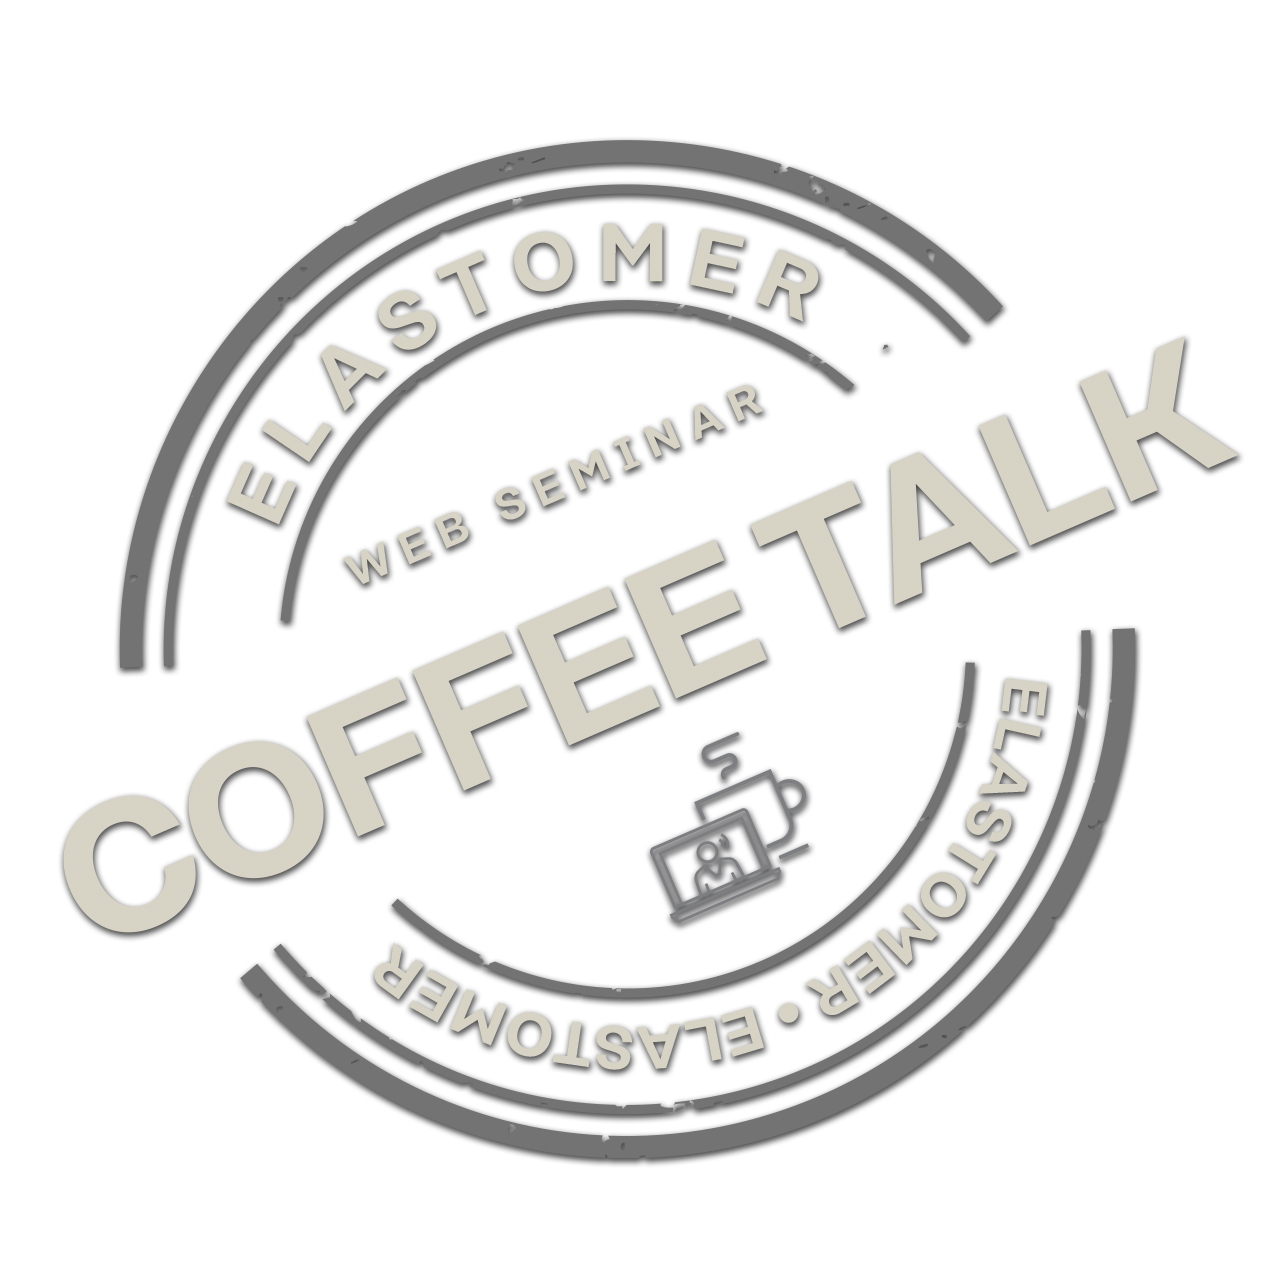 With its Elastomer Coffee Talks, Kuraray offers users from different industries a new knowledge and networking platform (Source: Kuraray)